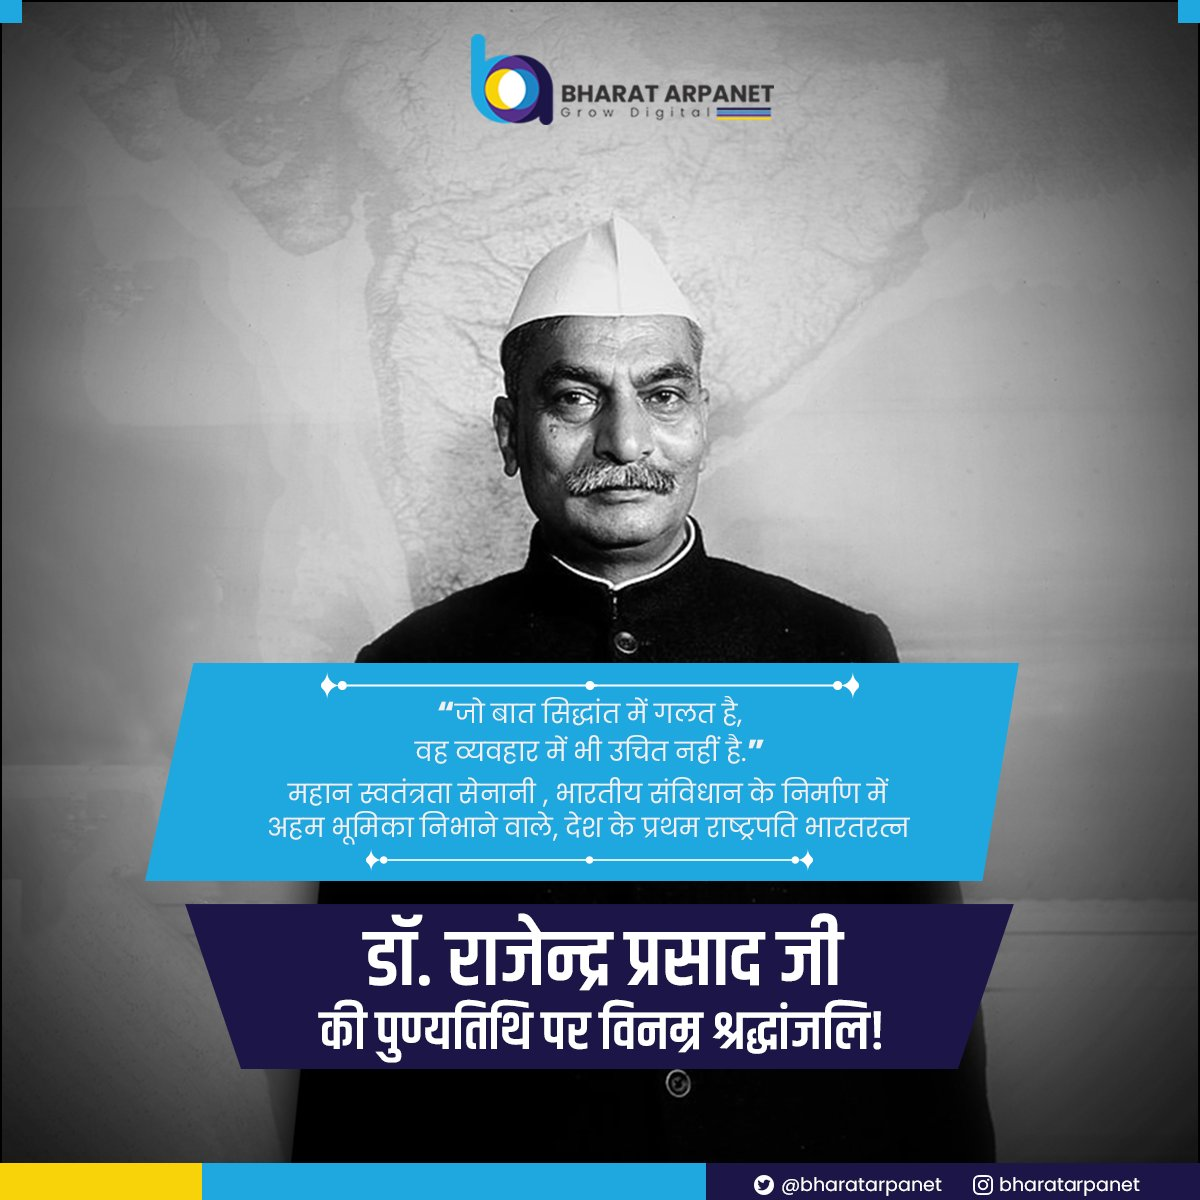 Bharat Arpanet pays humble tributes to revolutionary freedom fighter & India's first President Dr. Rajendra Prasad on his death anniversary.  #DrRajendraPrasad #FirstpresidentOfIndia #BharatArpanet https://t.co/HBFBGz5Ahj